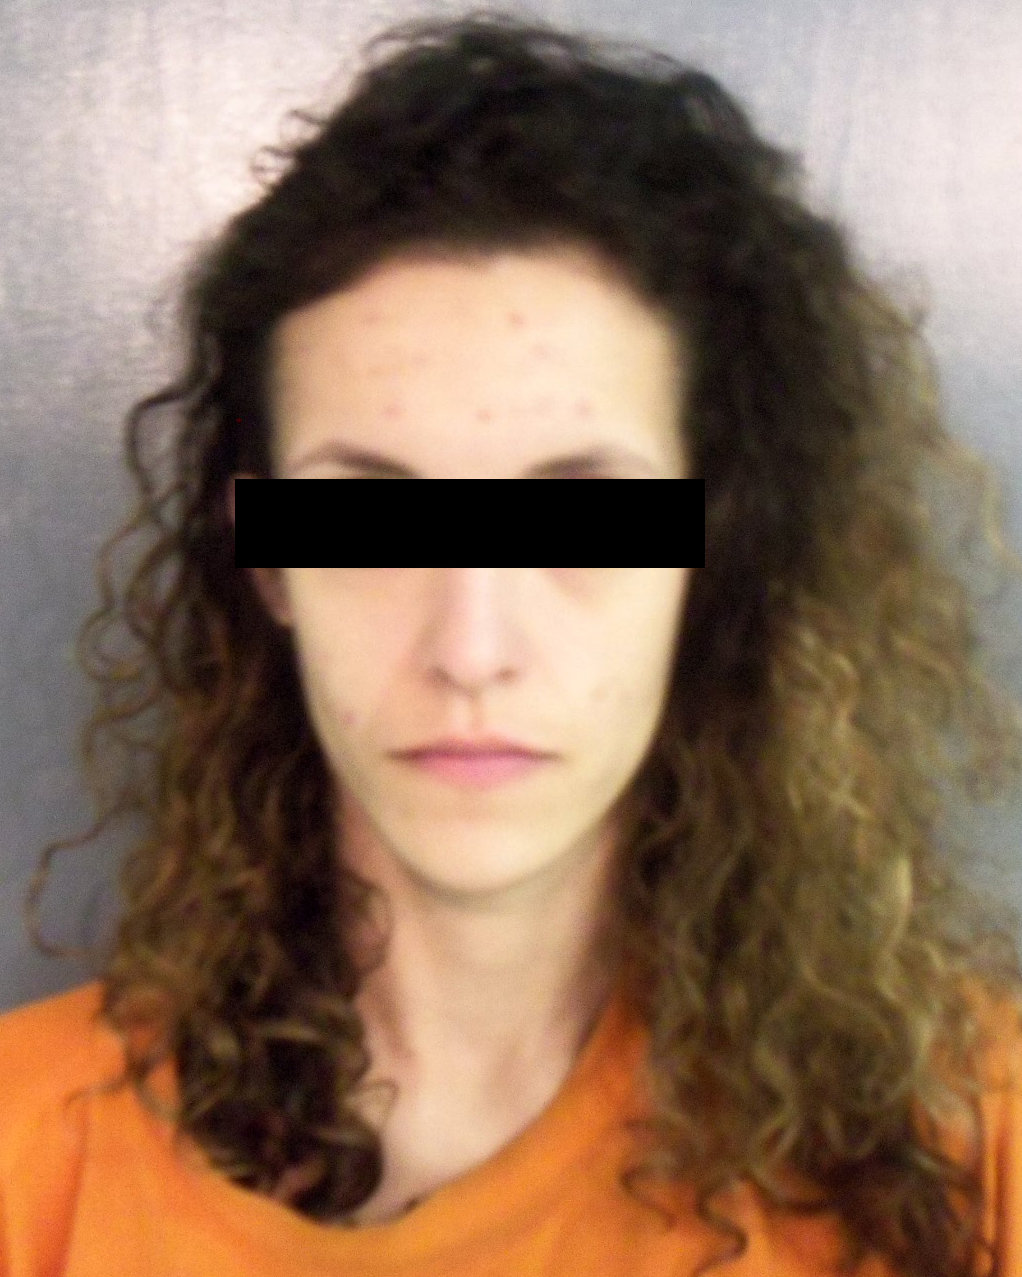 Police photo of victim, Rachel, from a prostitution arrest in Gloucester County, VA